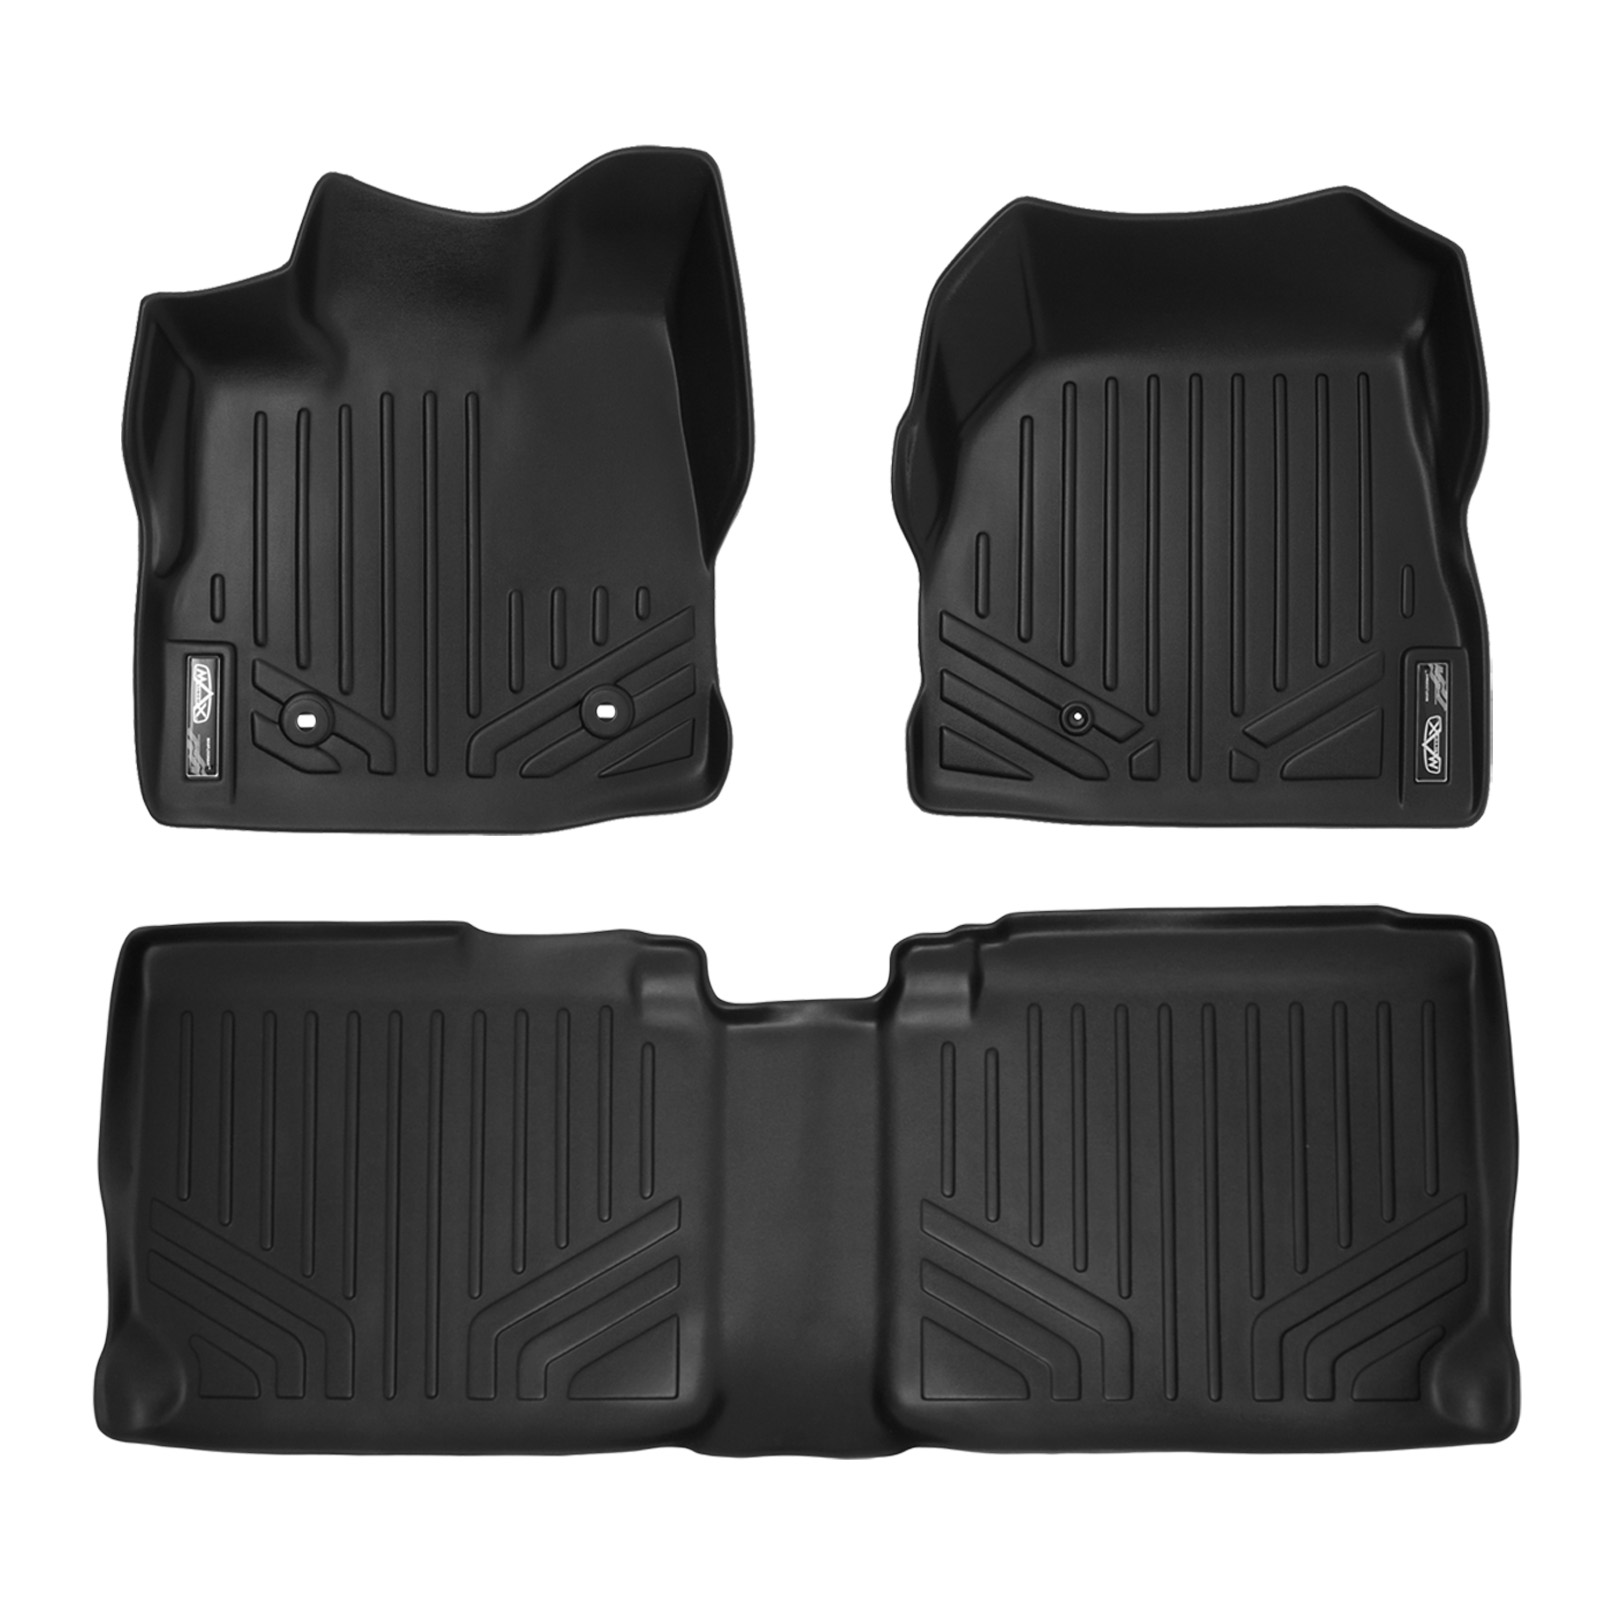 2010-2011 Chevy Equinox MAXFloormat All Weather 2 Rows